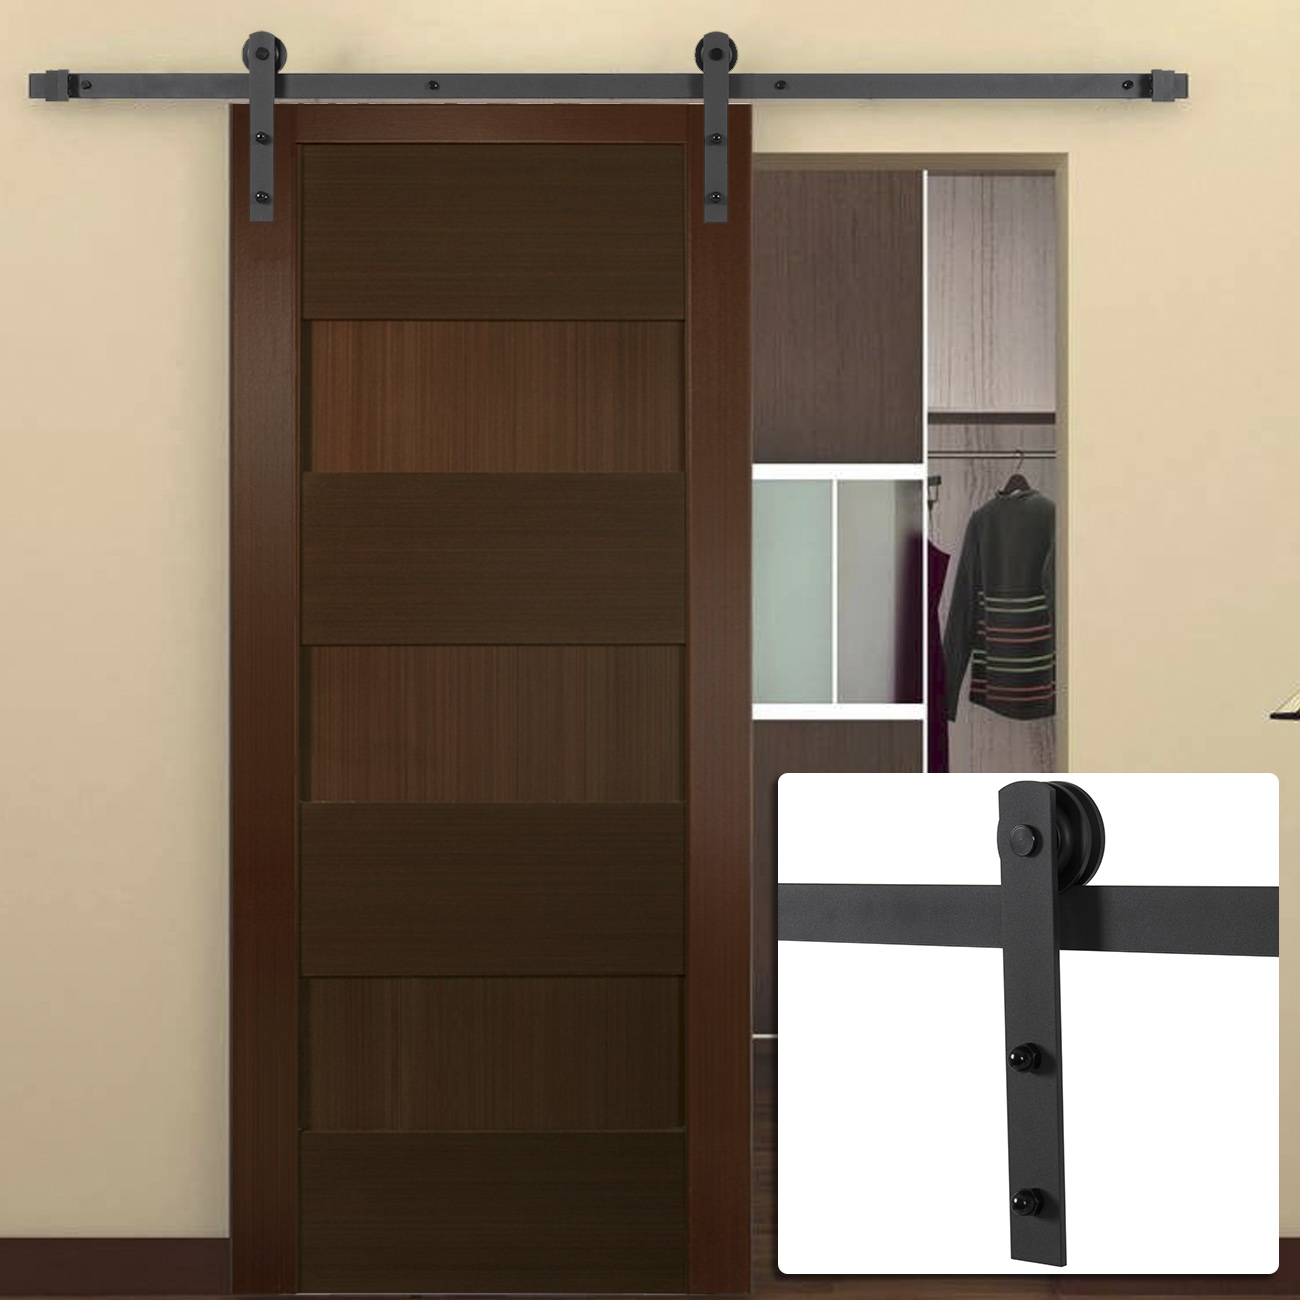 6FT Antique Country Style Steel Sliding Barn Door Closet Hardware Frosted Black  eBay